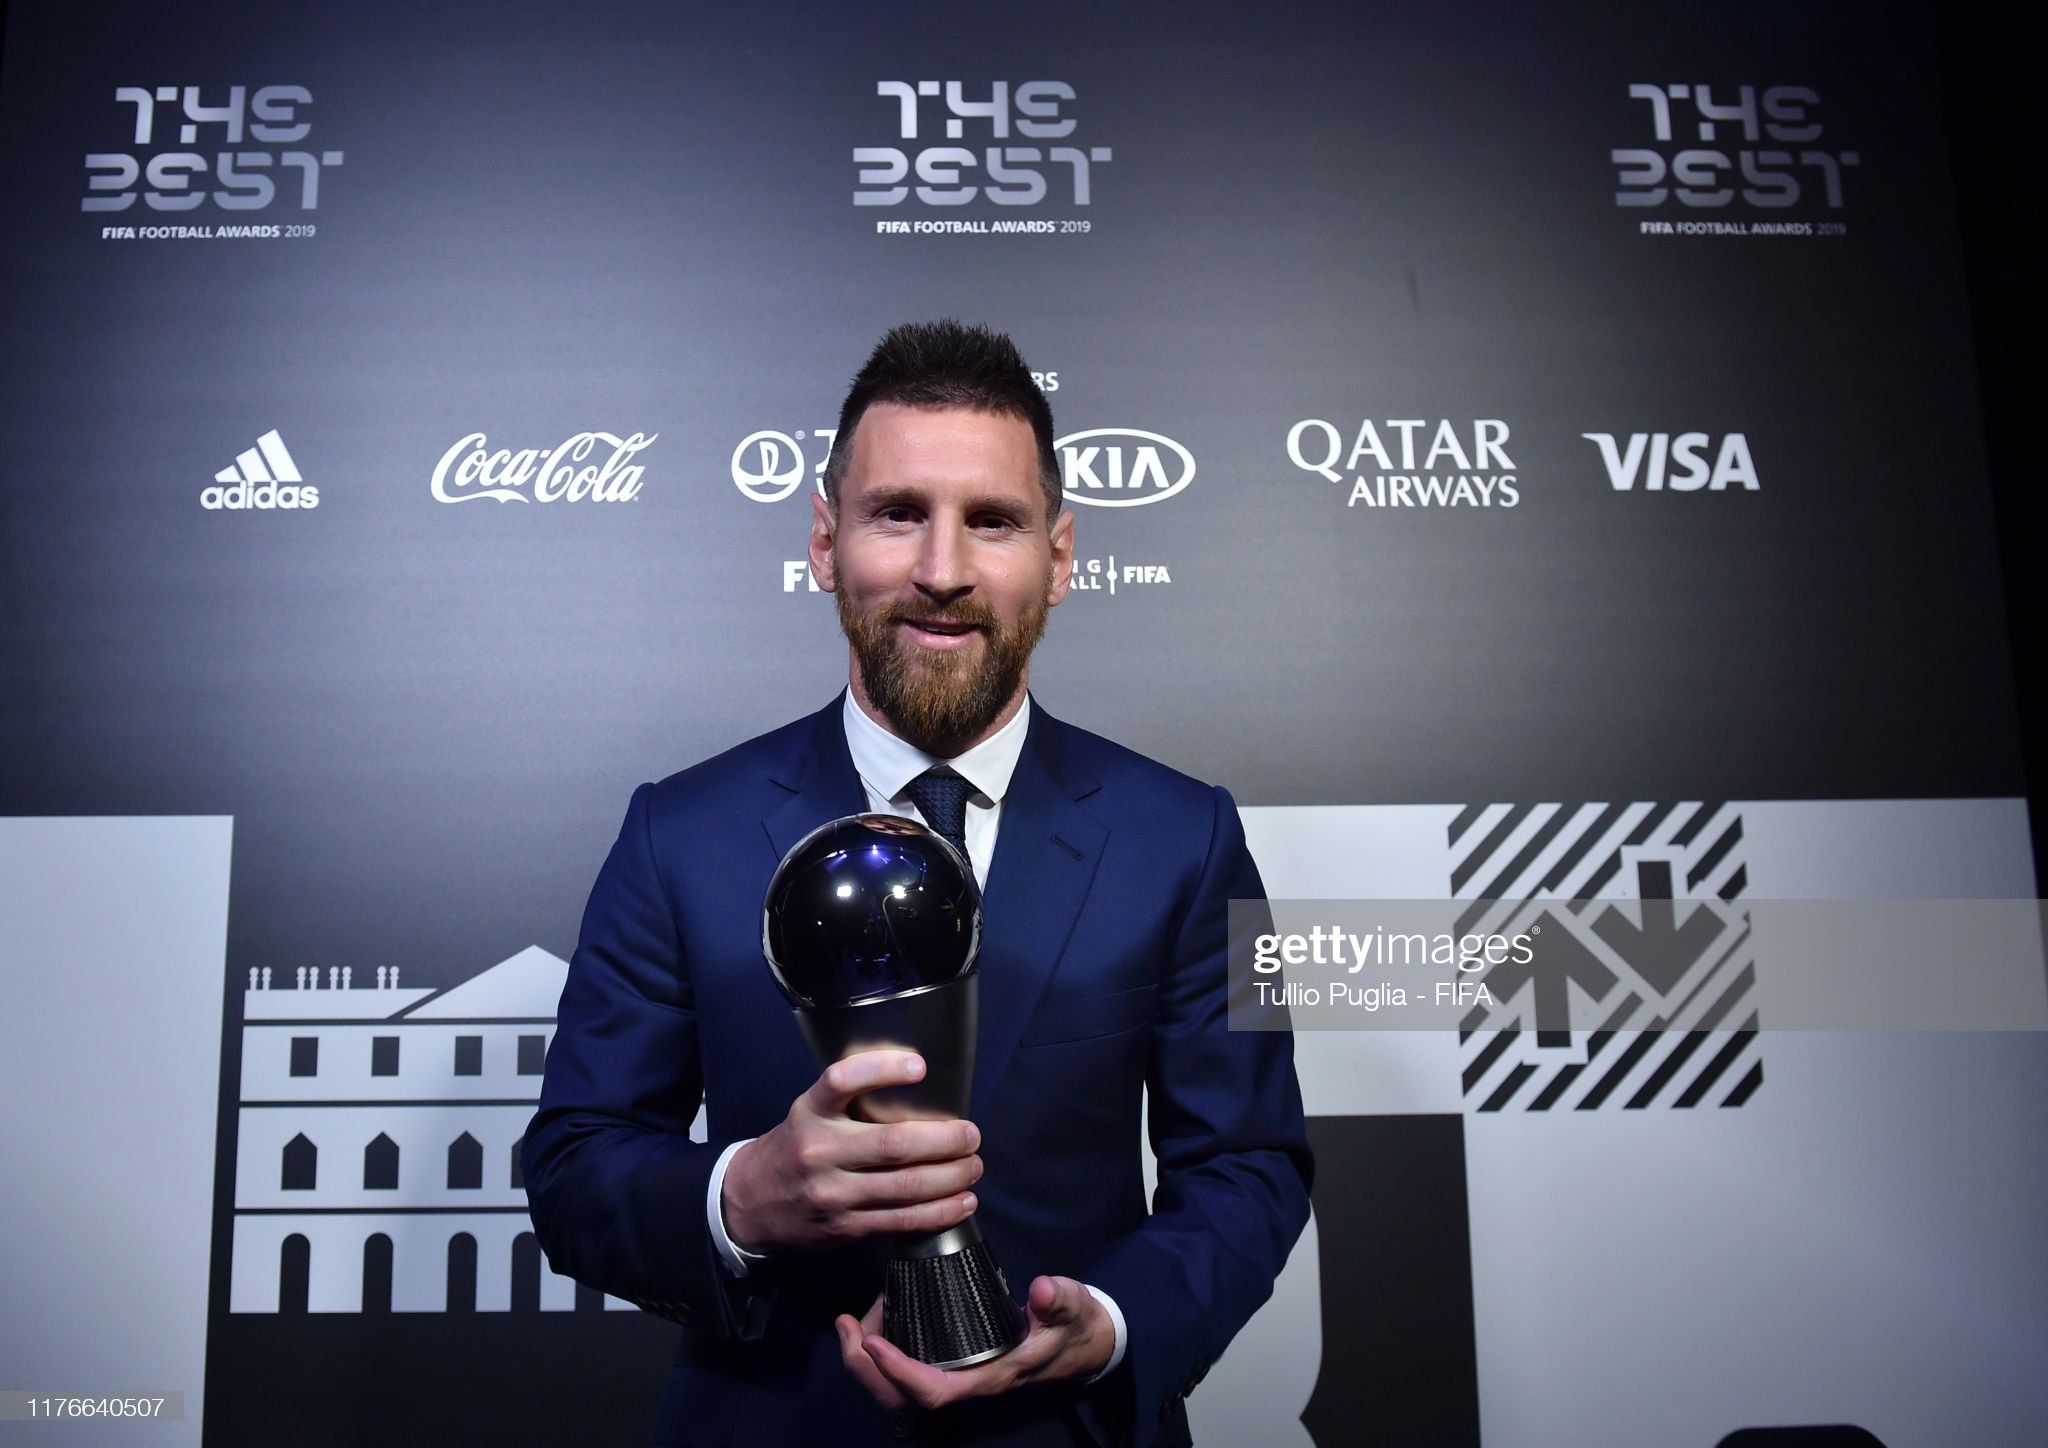 The Best FIFA Football Awards 2019 The-best-fifa-mens-player-award-winner-lionel-messi-of-fc-barcelona-picture-id1176640507?s=2048x2048